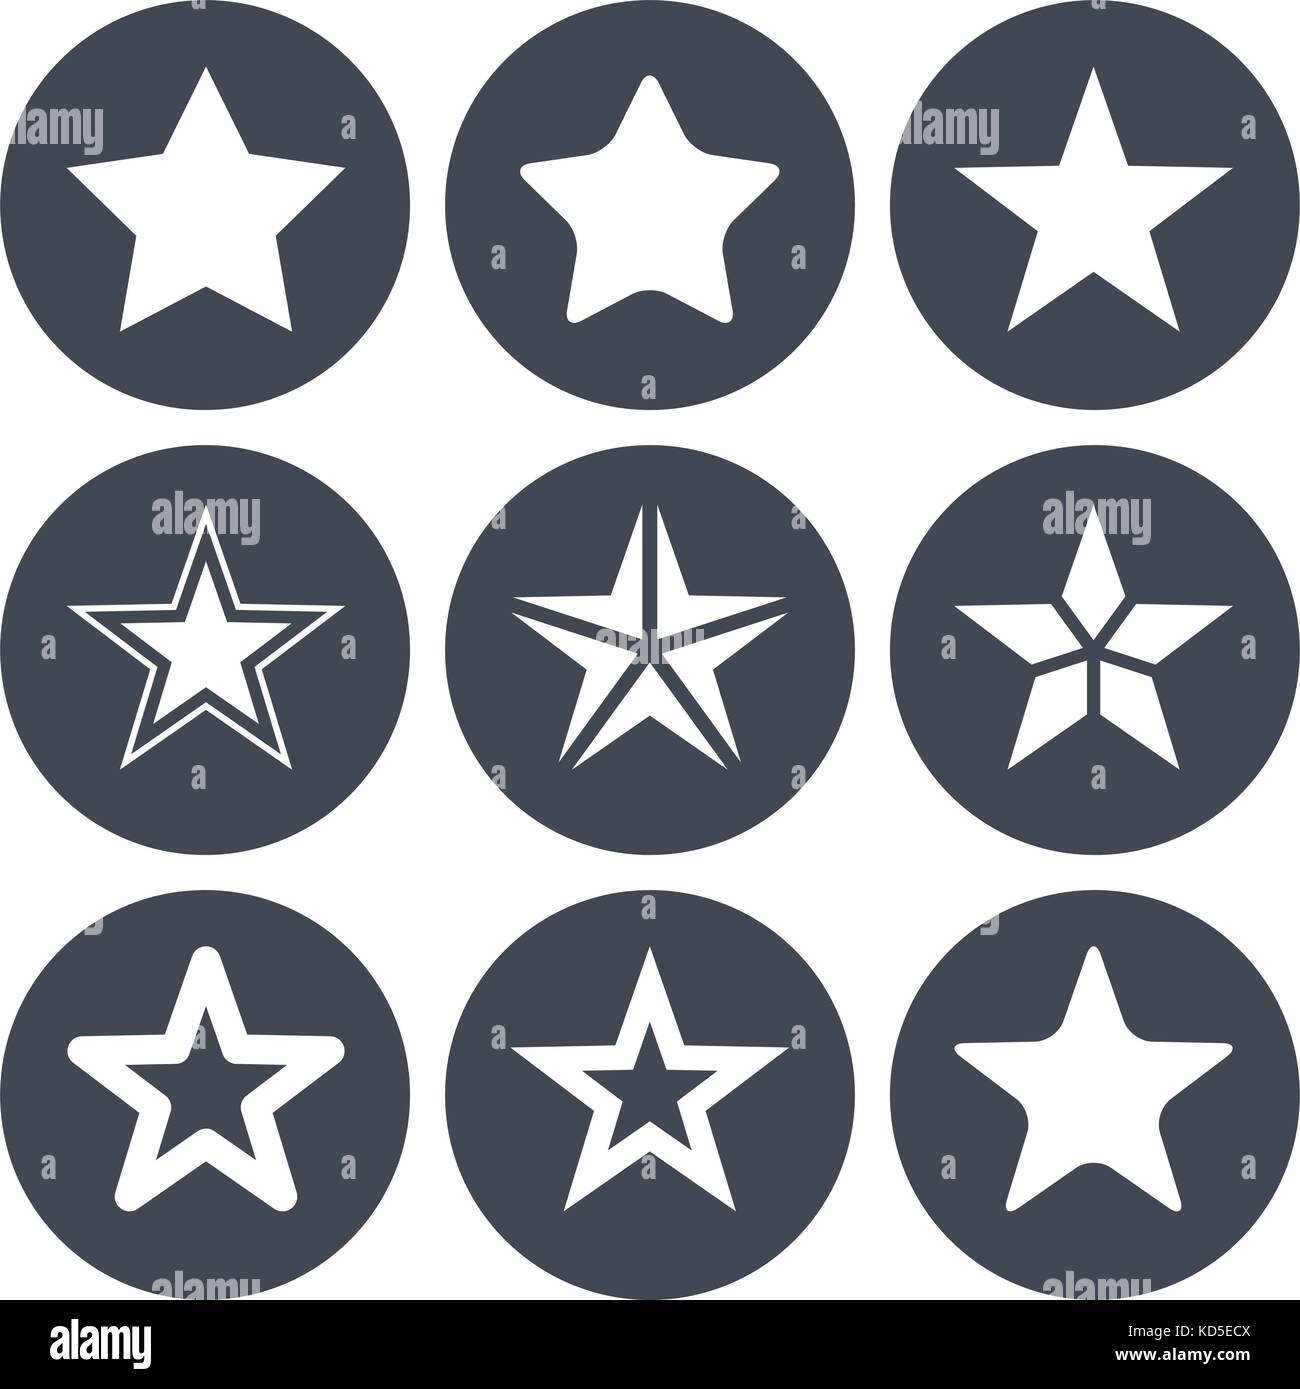 Simple star ions for rating bar - Stock Image